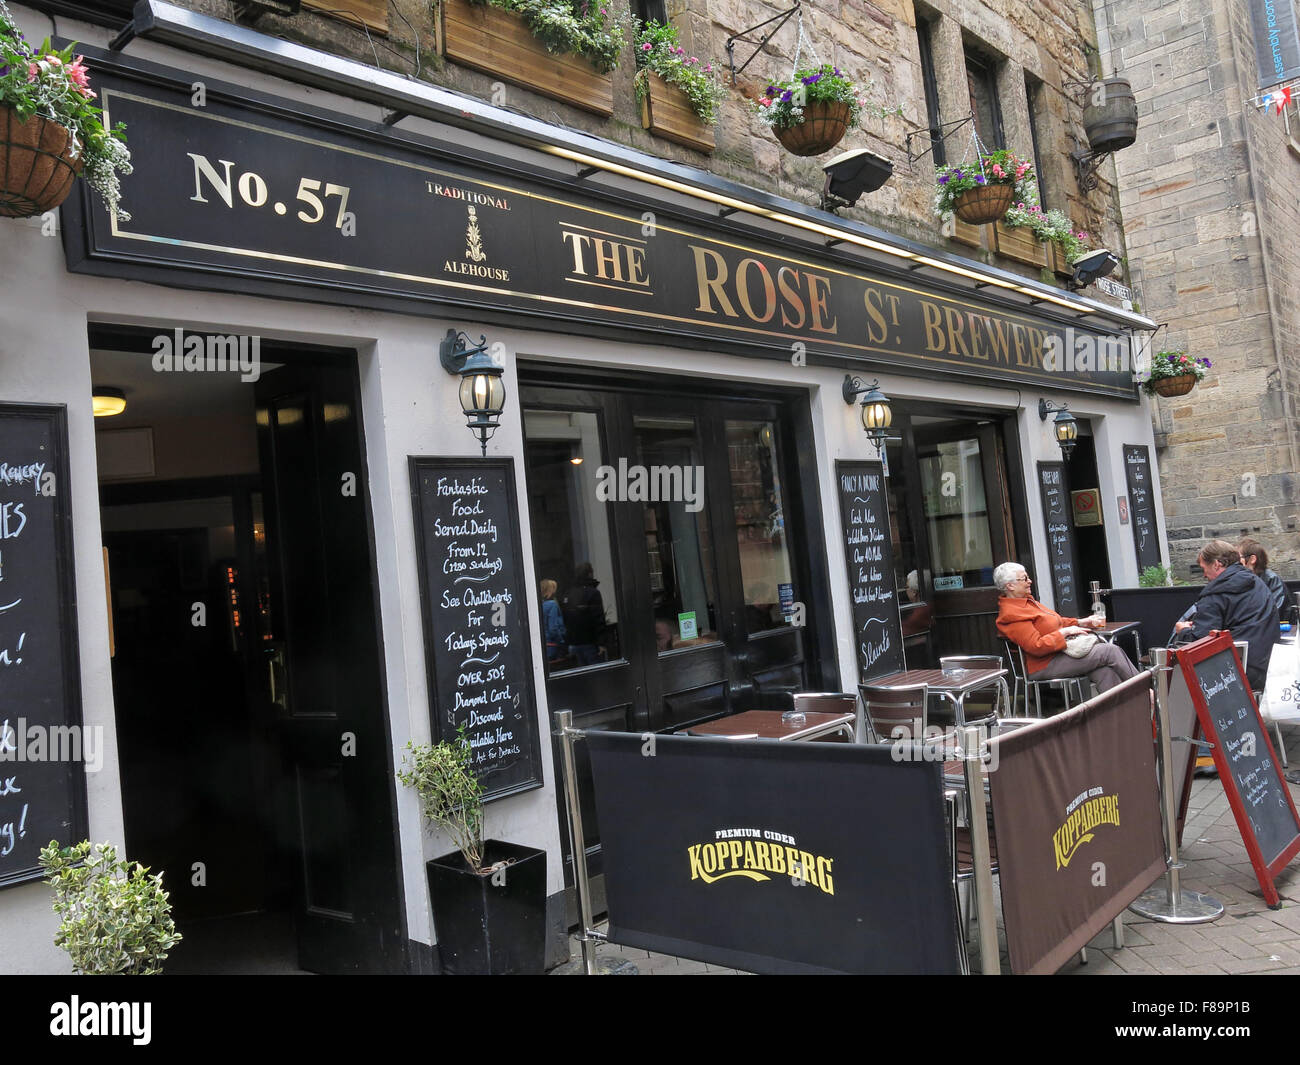 Pubs,stag,night,hen,nights,location,for,area,EDN,narrow,new,pedestrian,pedestrianised,scottish,shopping,st,street,town,center,rose street,Rose st,Rose St Brewery,GoTonySmith,drinking,culture,alcoholism,alcoholics,AA,outside,street,history,historic,Buy Pictures of,Buy Images Of,Edinburgh Pubs,Edinburgh Pub